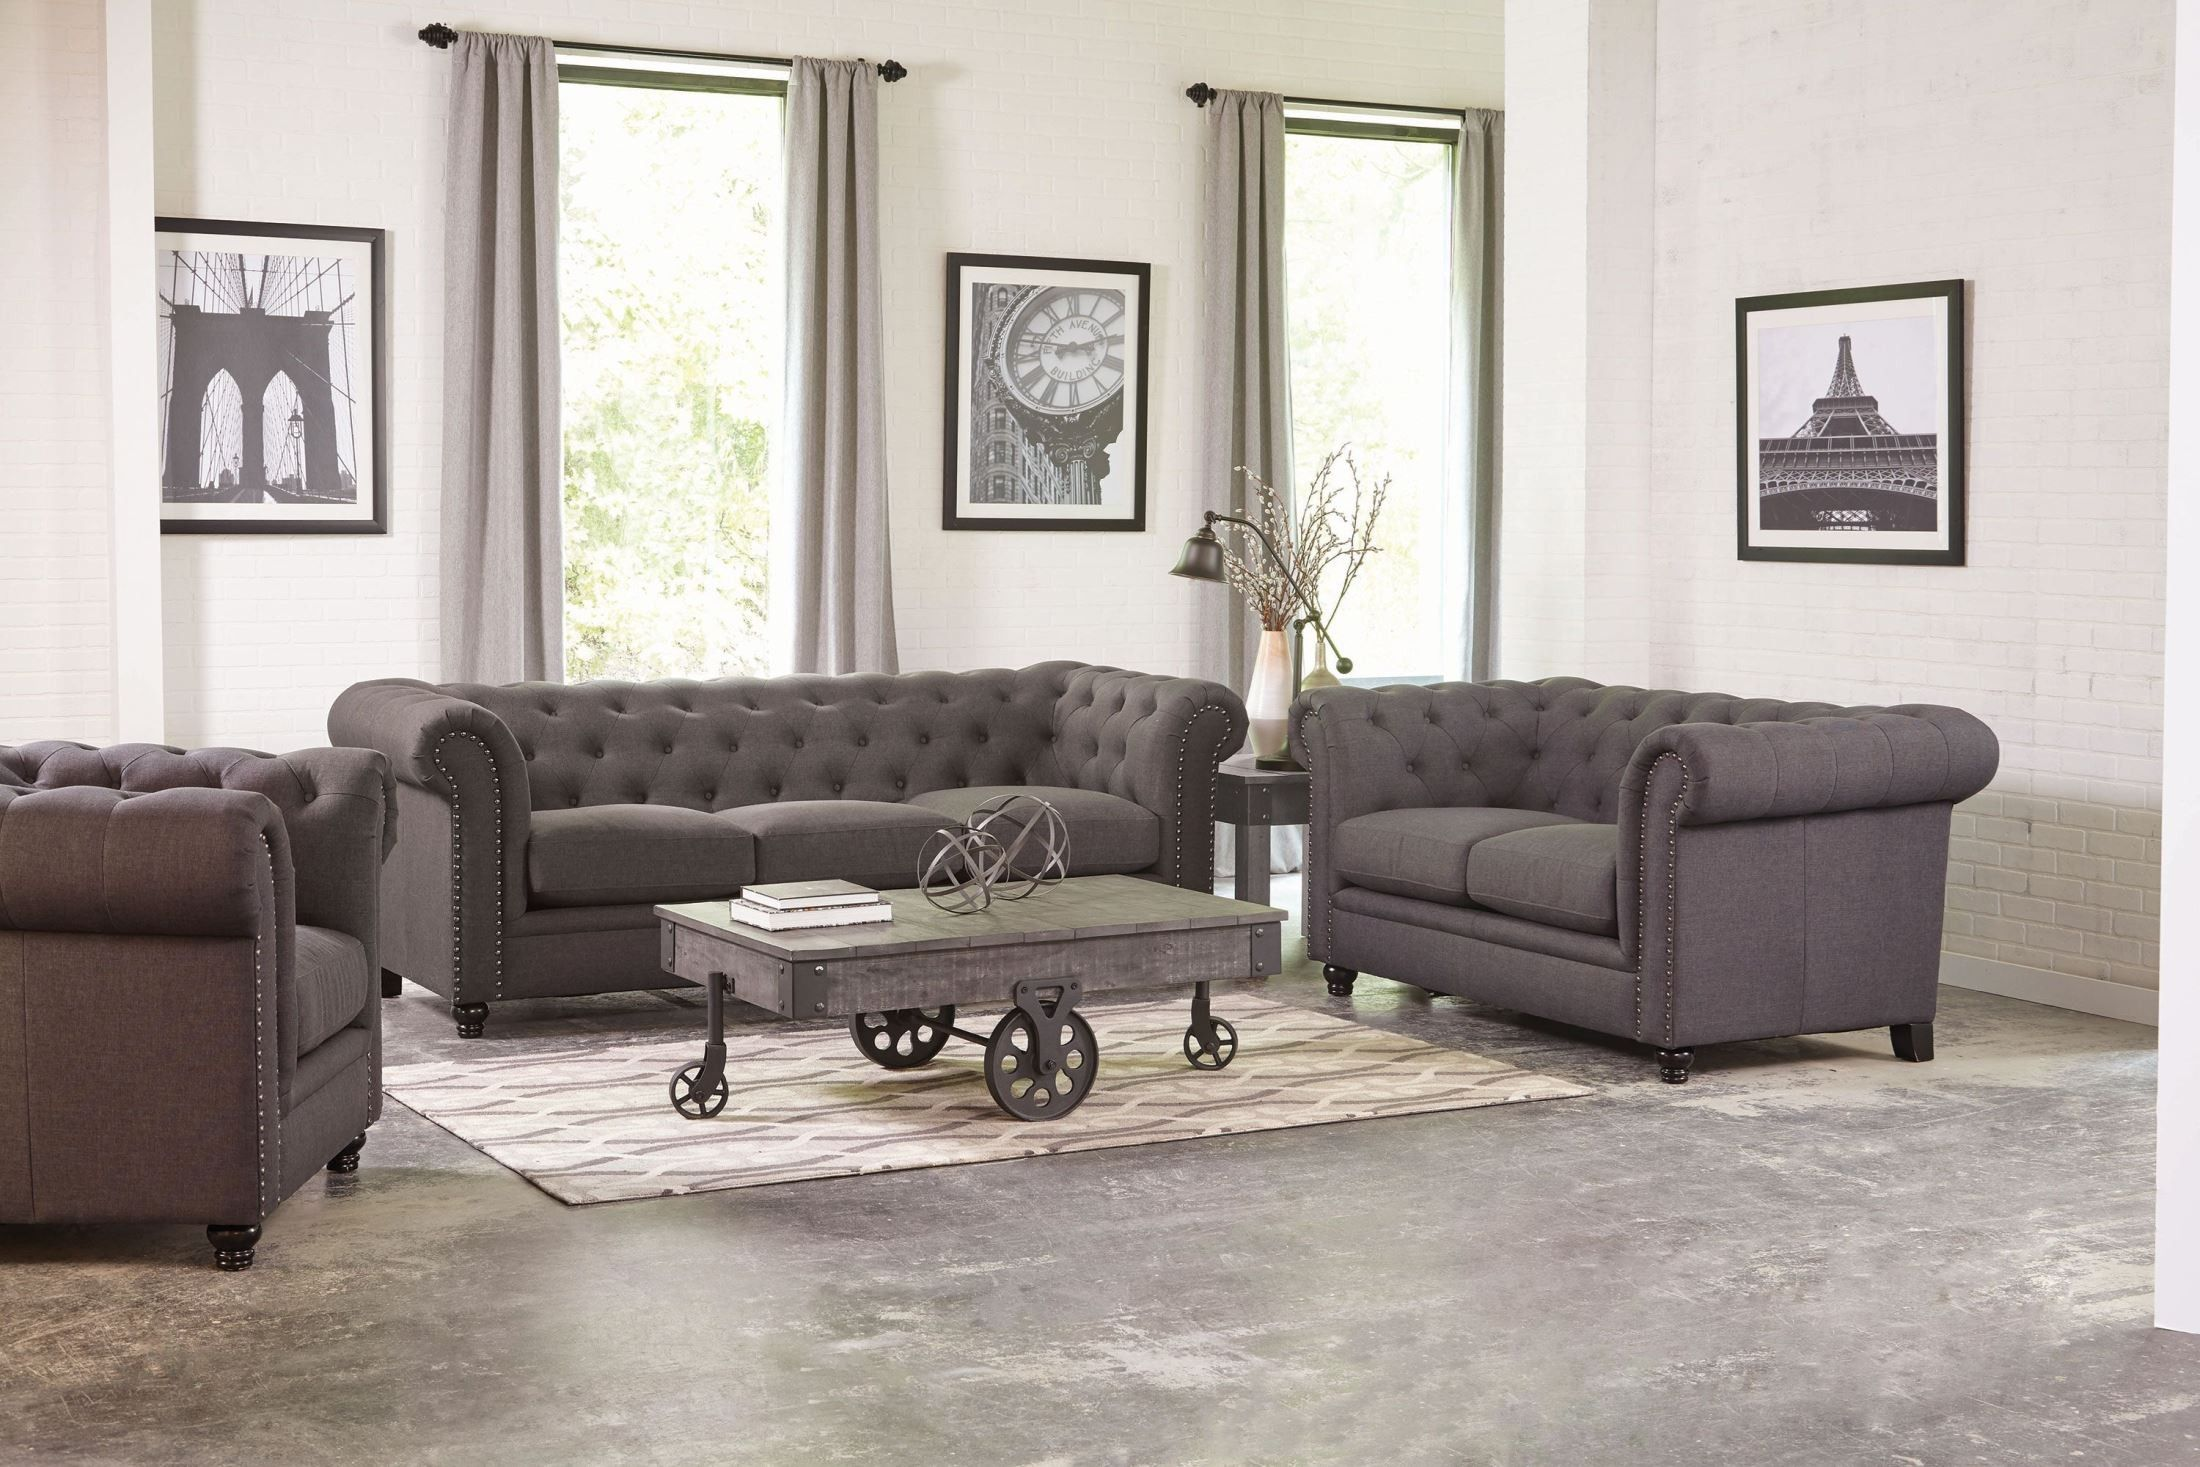 10 Most Popular Two Piece Living Room Sets